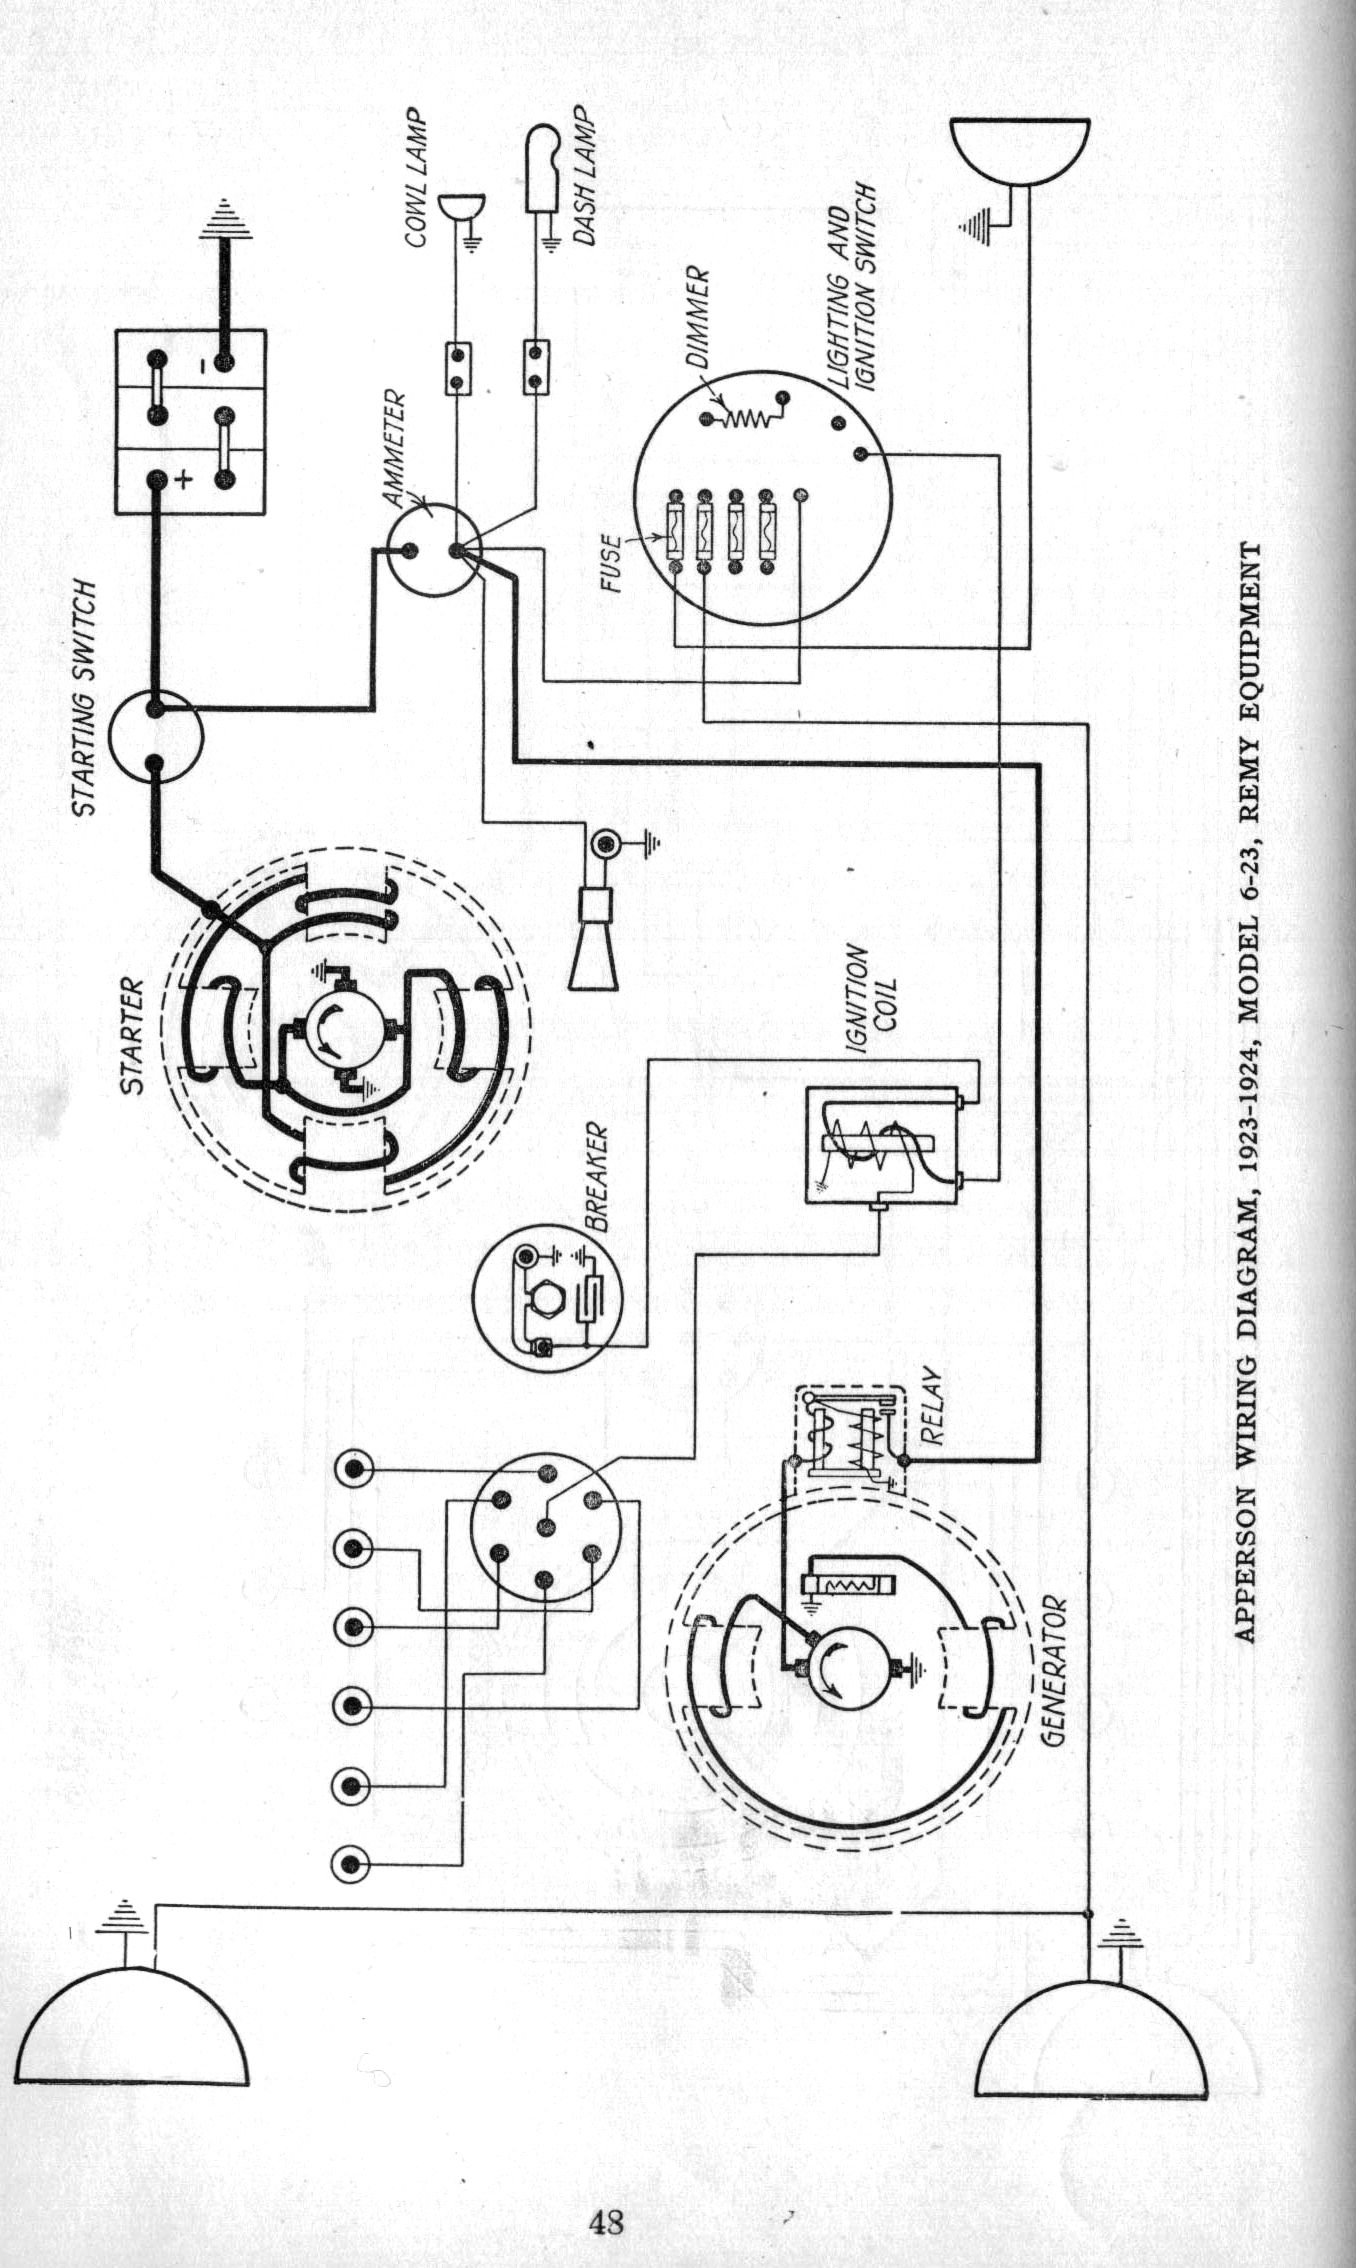 wiring diagram for 1923 24 buick model 4 wiring diagram data valearly 1920\u0027s apperson and buick wiring diagrams the old car manual 1922 buick model 4 electrical